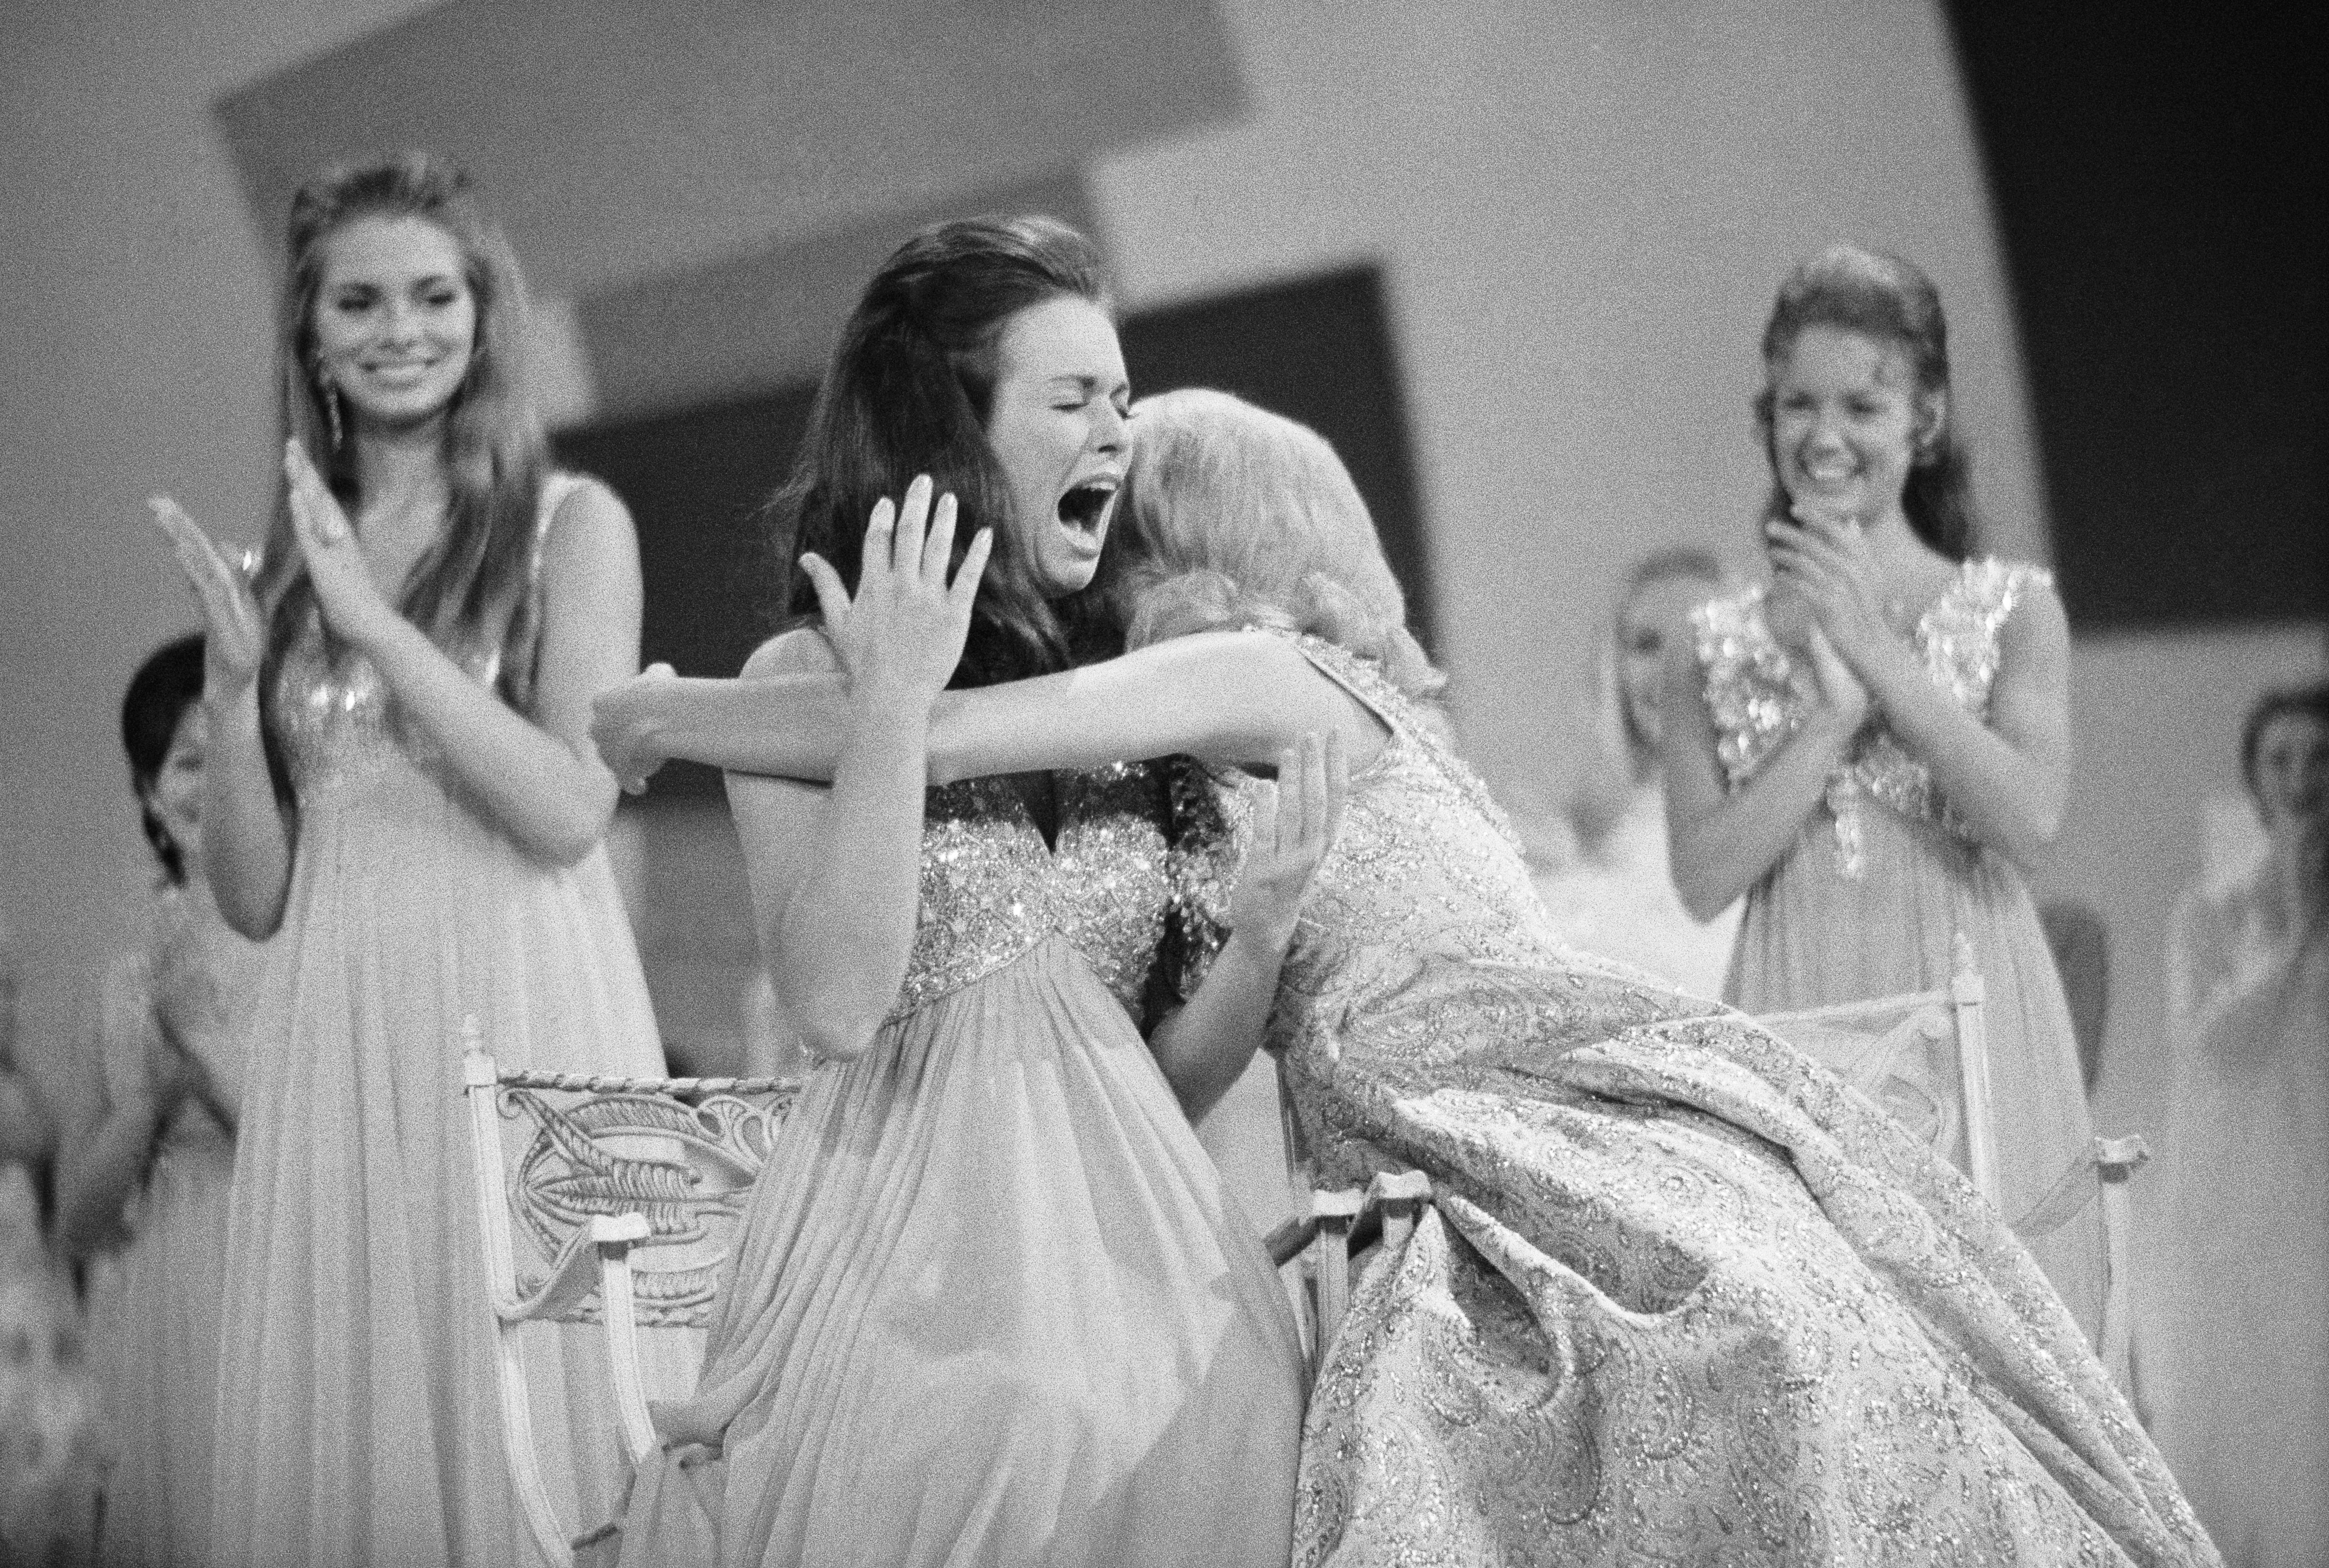 Newly-crowned Miss America, Phyllis George reacts to the announcement of her title on Sept. 12, 1970 in Atlantic City, N.J.